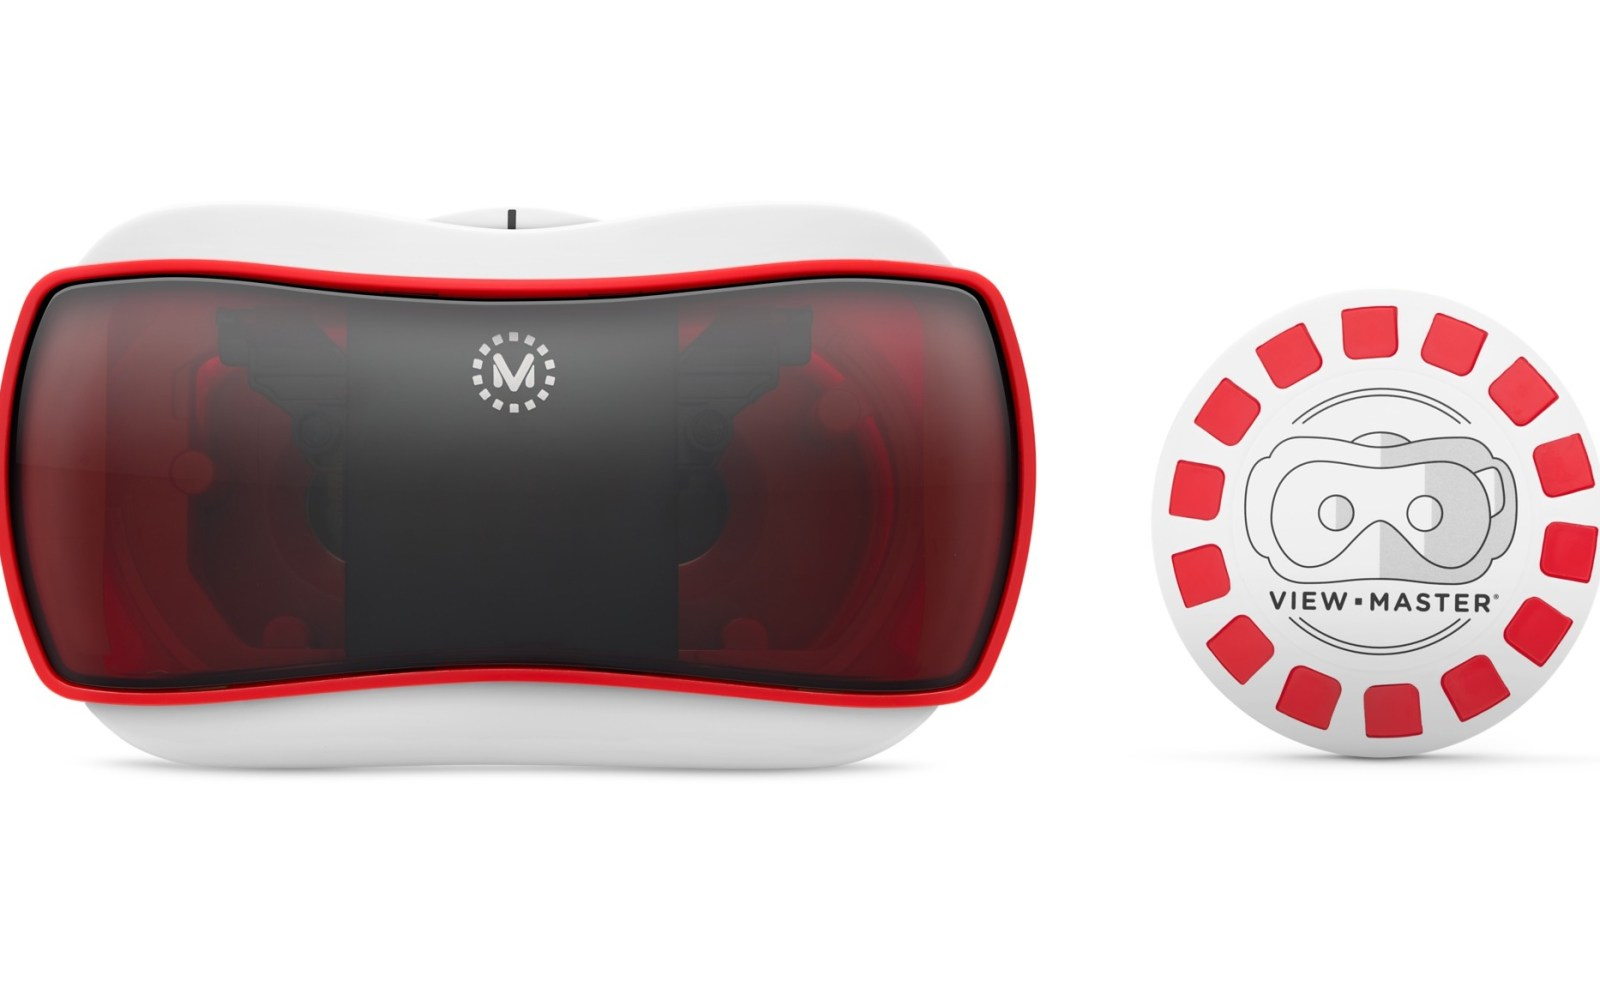 Apple now selling a classic take on the virtual reality headset with the new View-Master